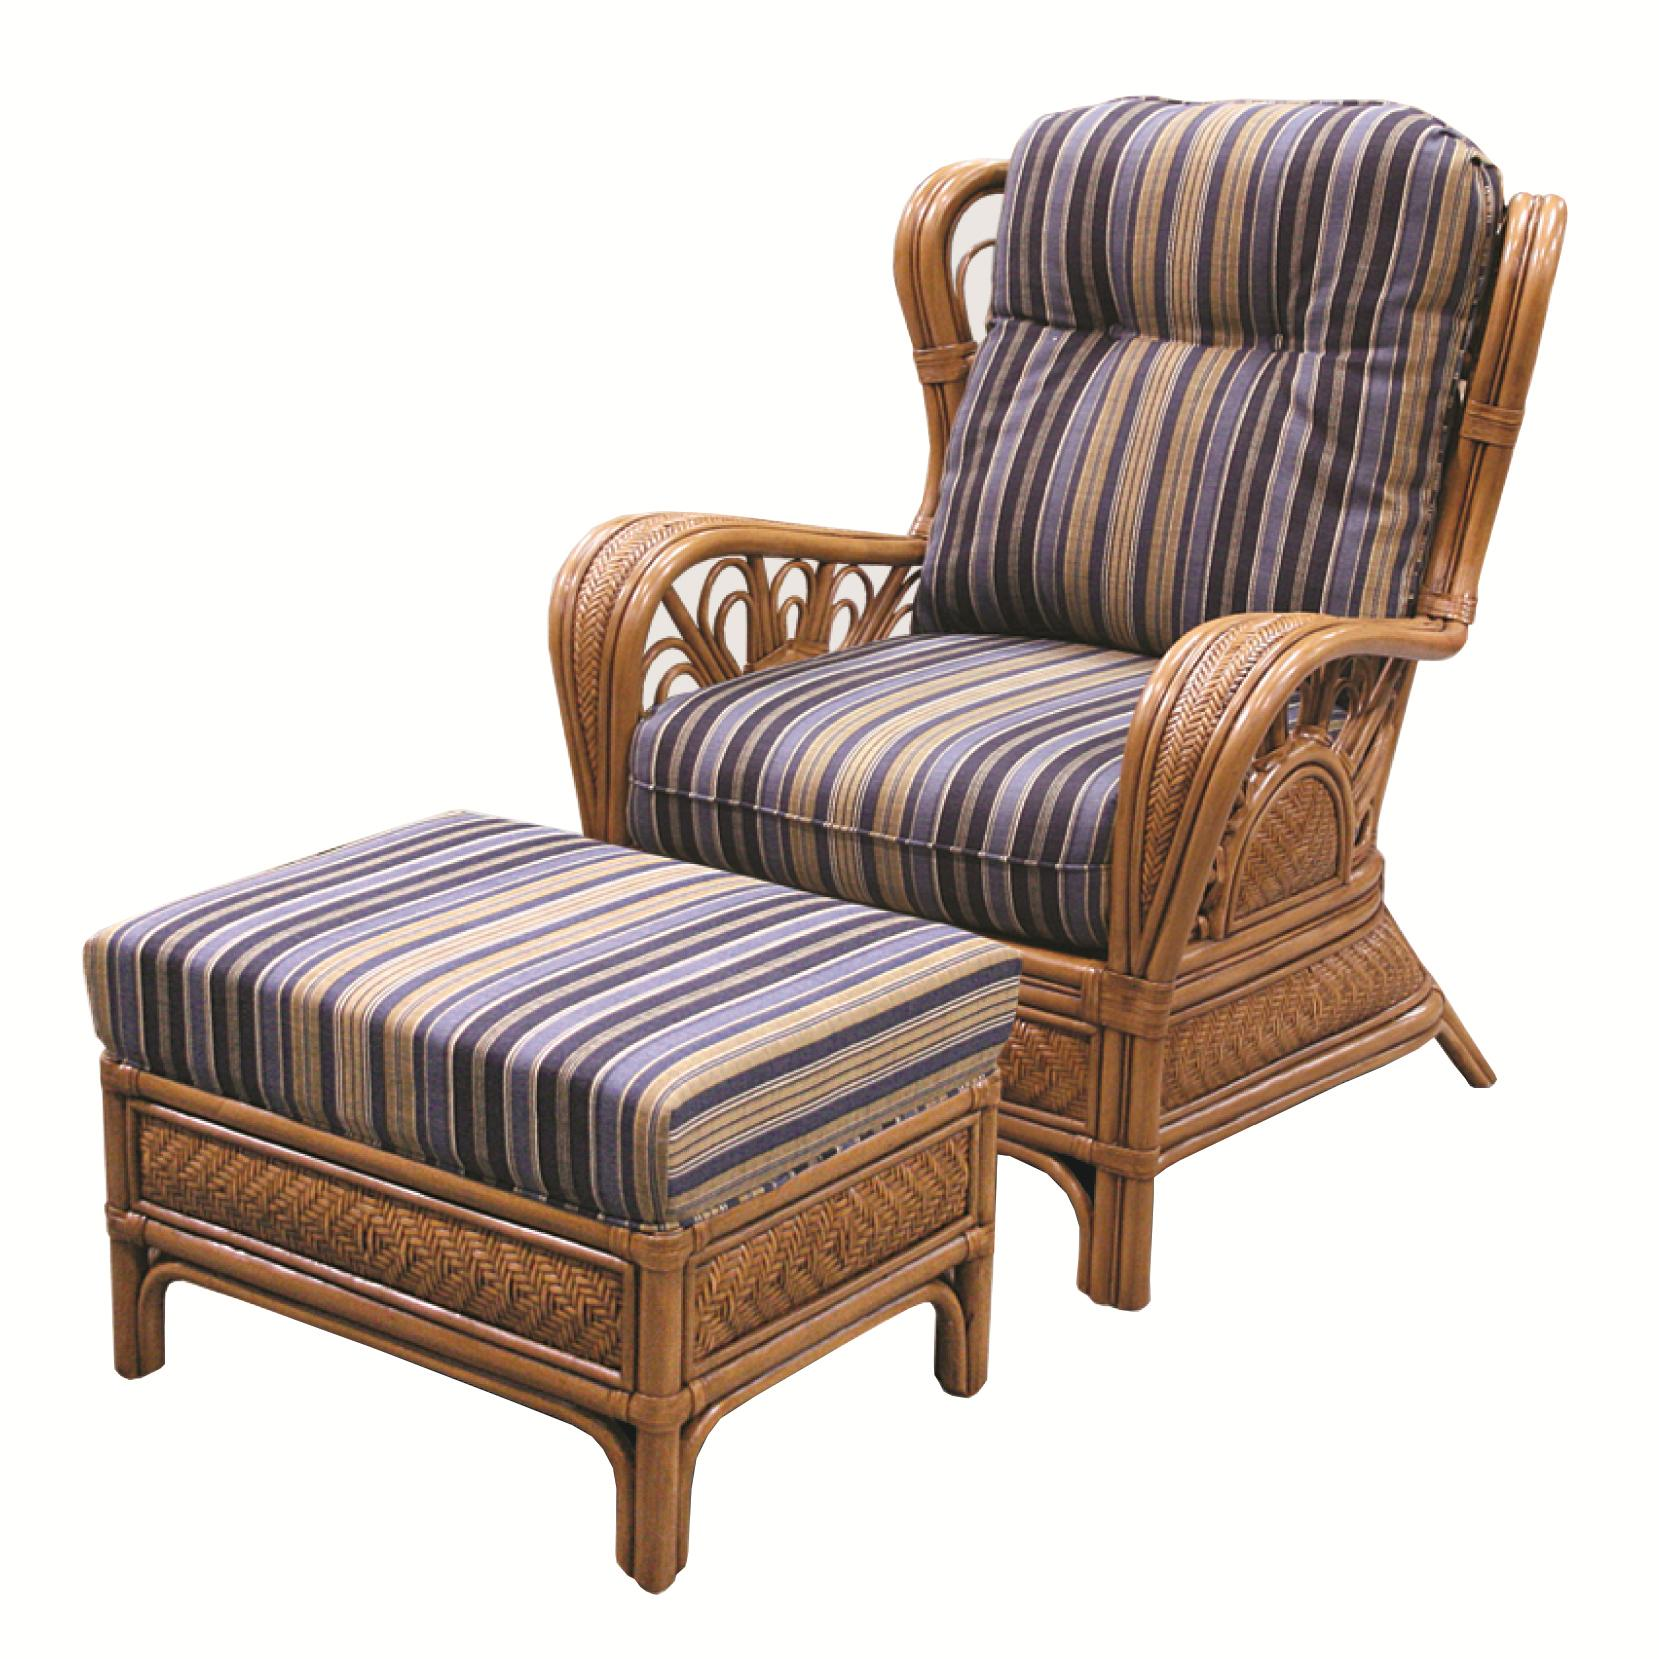 Wicker Rattan Chair and Ottoman